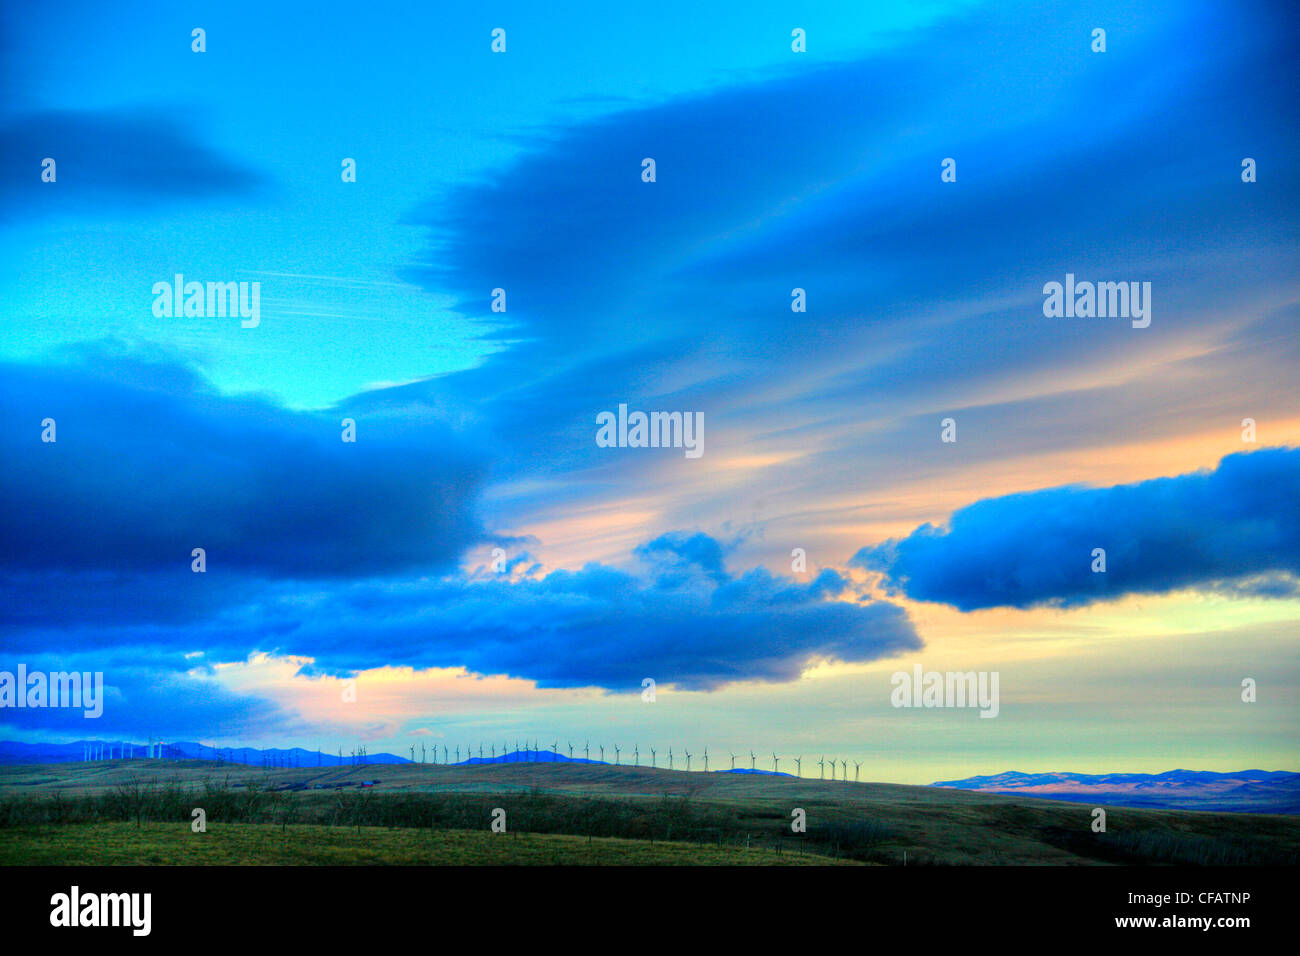 Wind farm with chinook clouds over top of them near Pincher Creek, Alberta, Canada - Stock Image